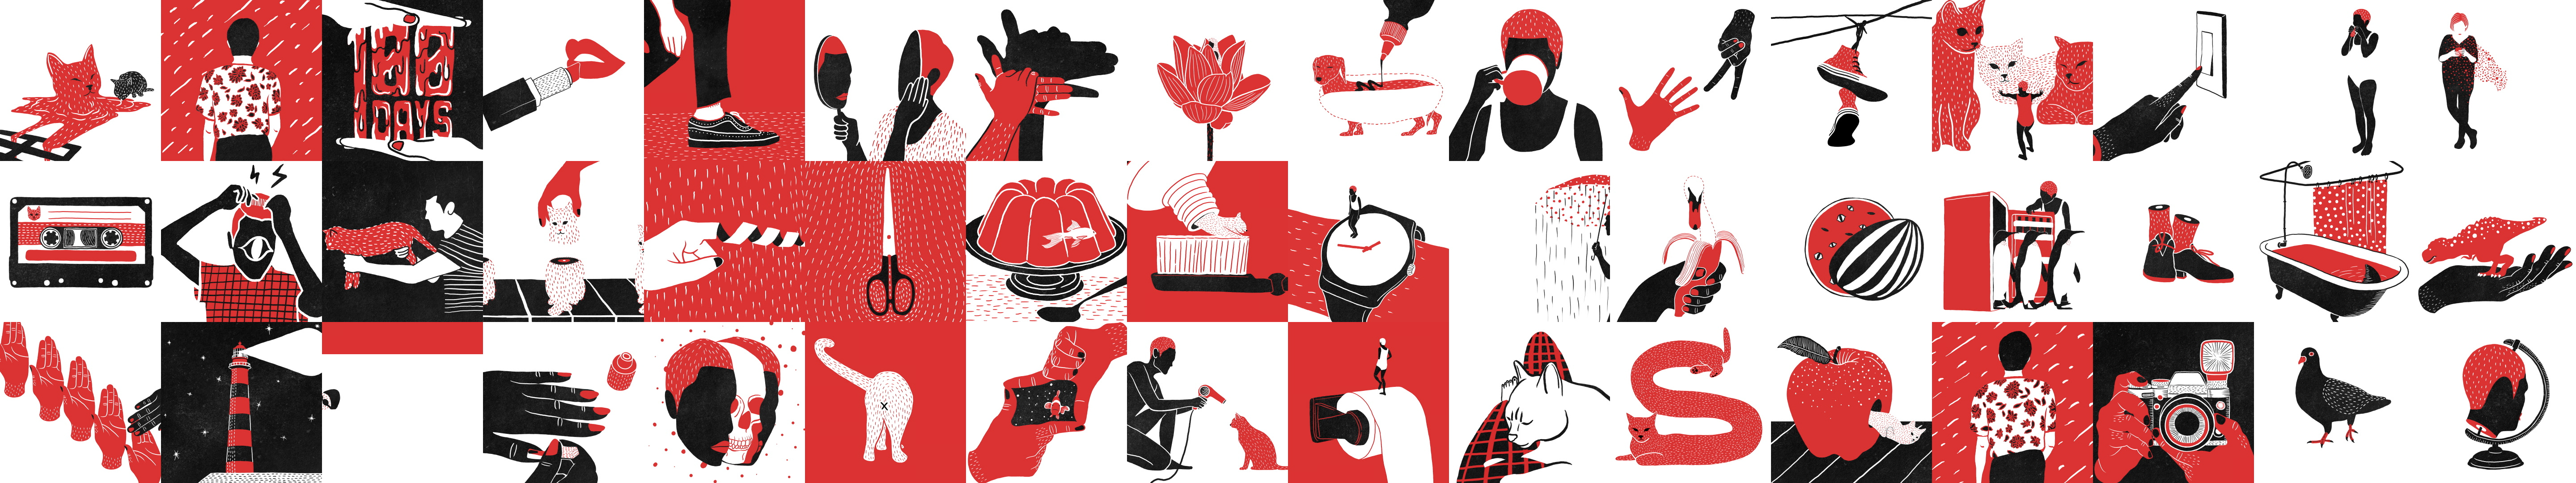 A collage of animation stills. All figures are in red, black, and white.